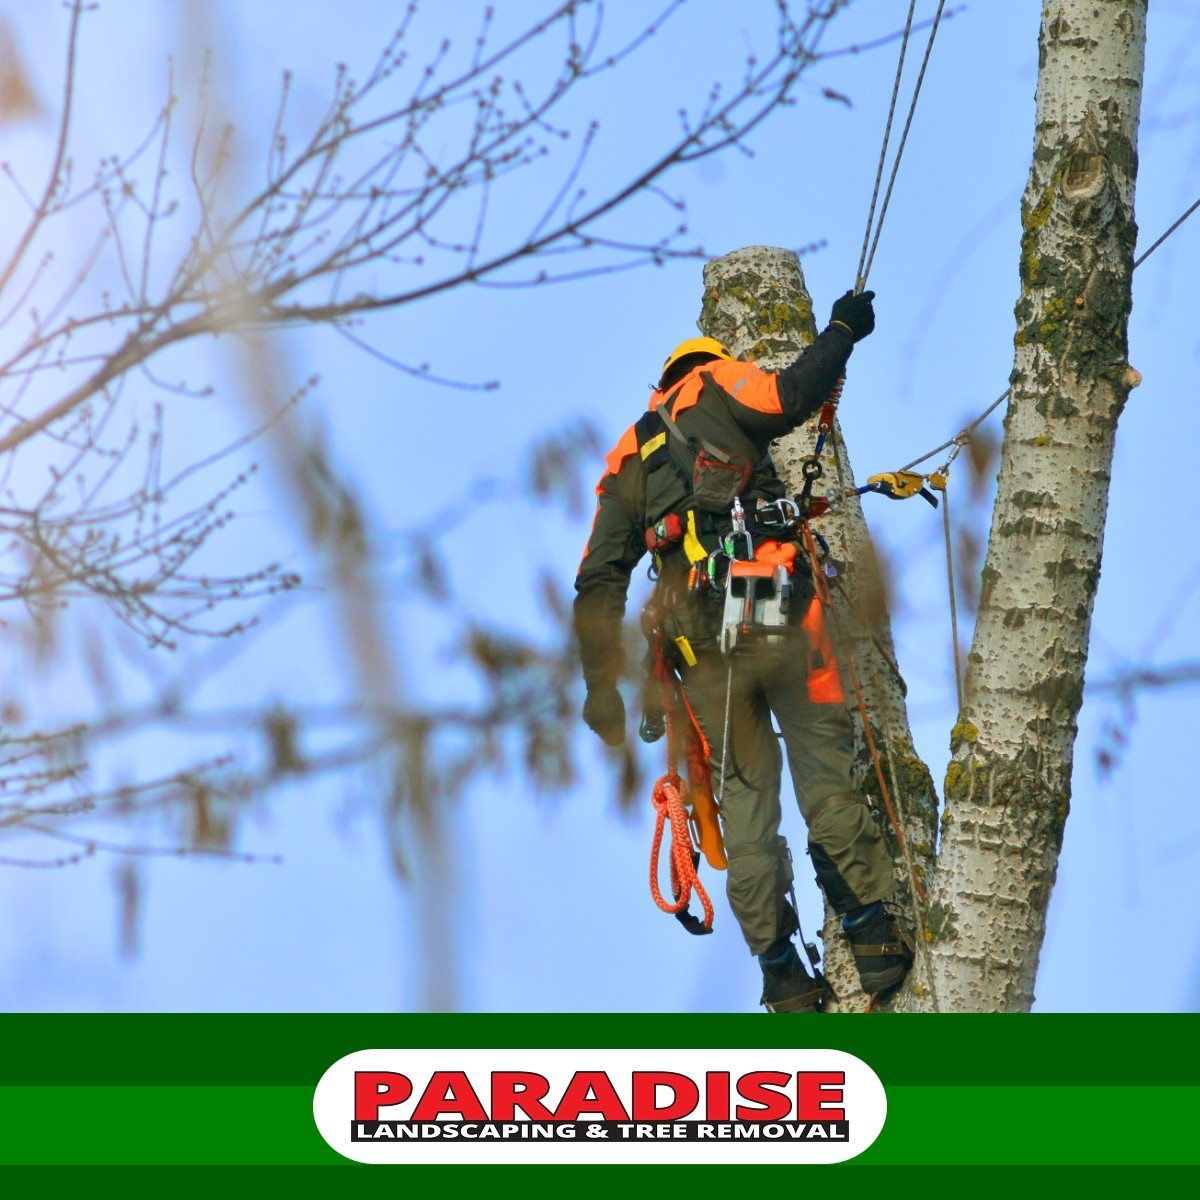 Hire only tree professionals who closely follow the